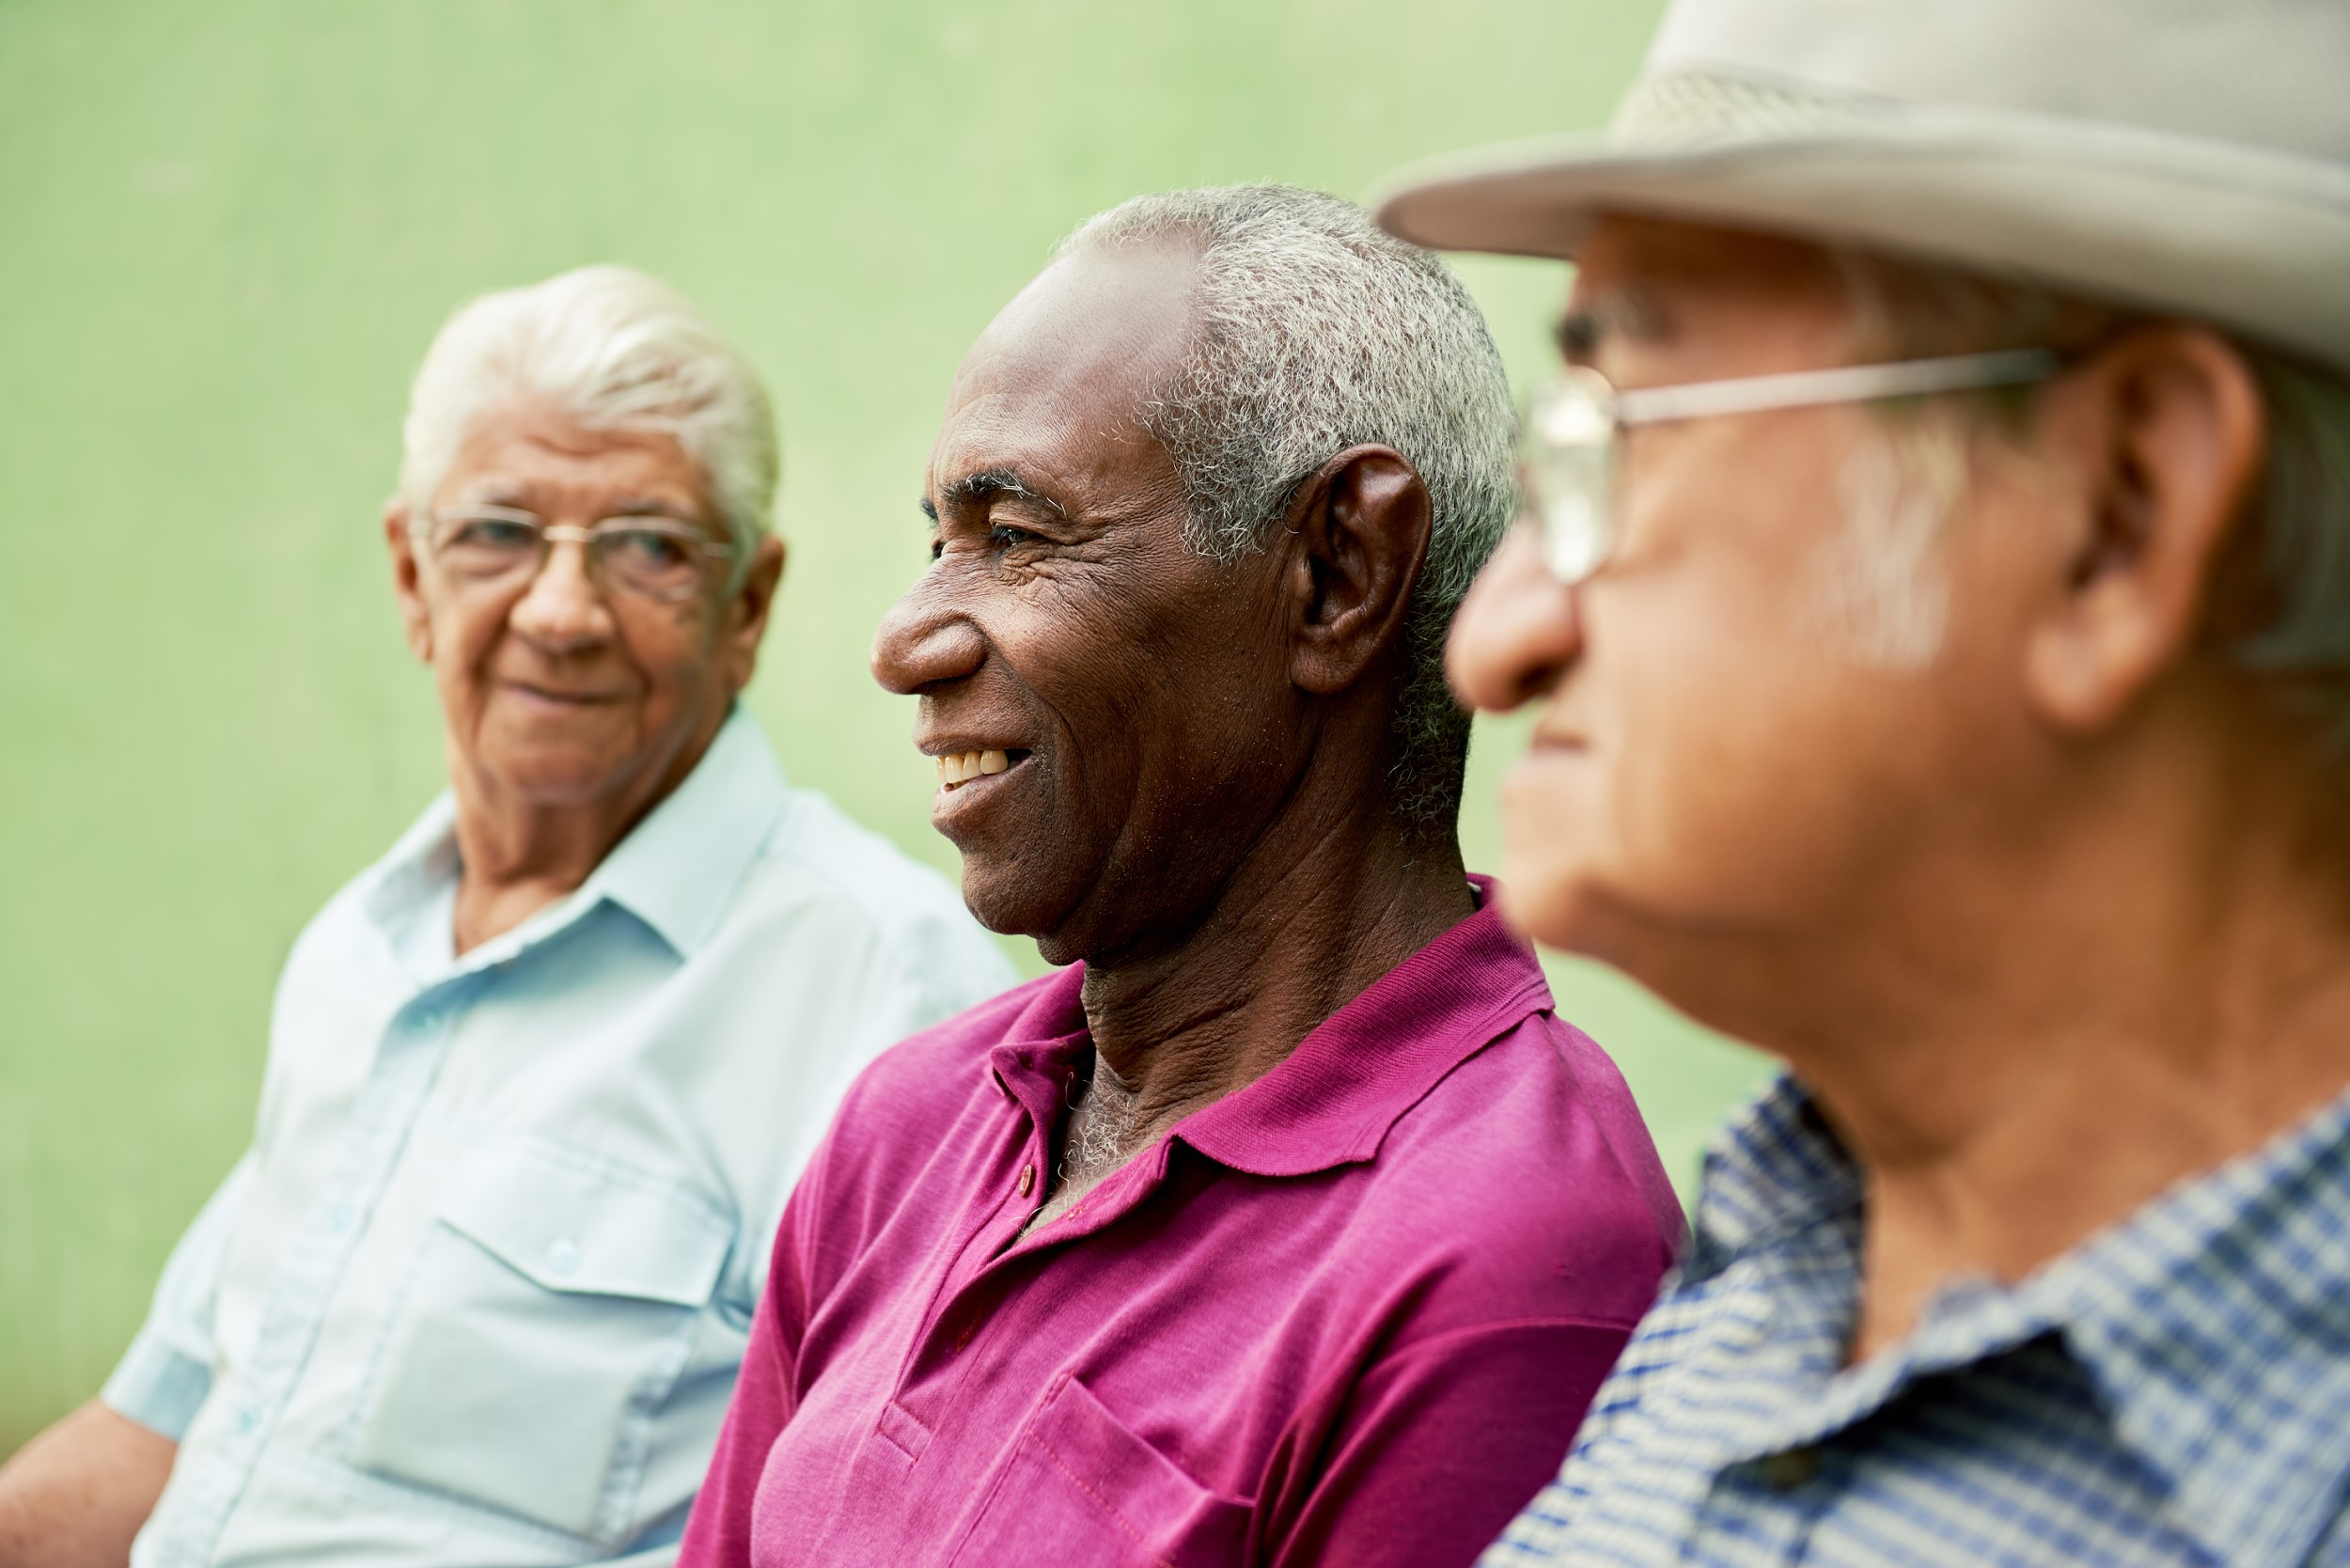 Importance of Caring For The Elderly